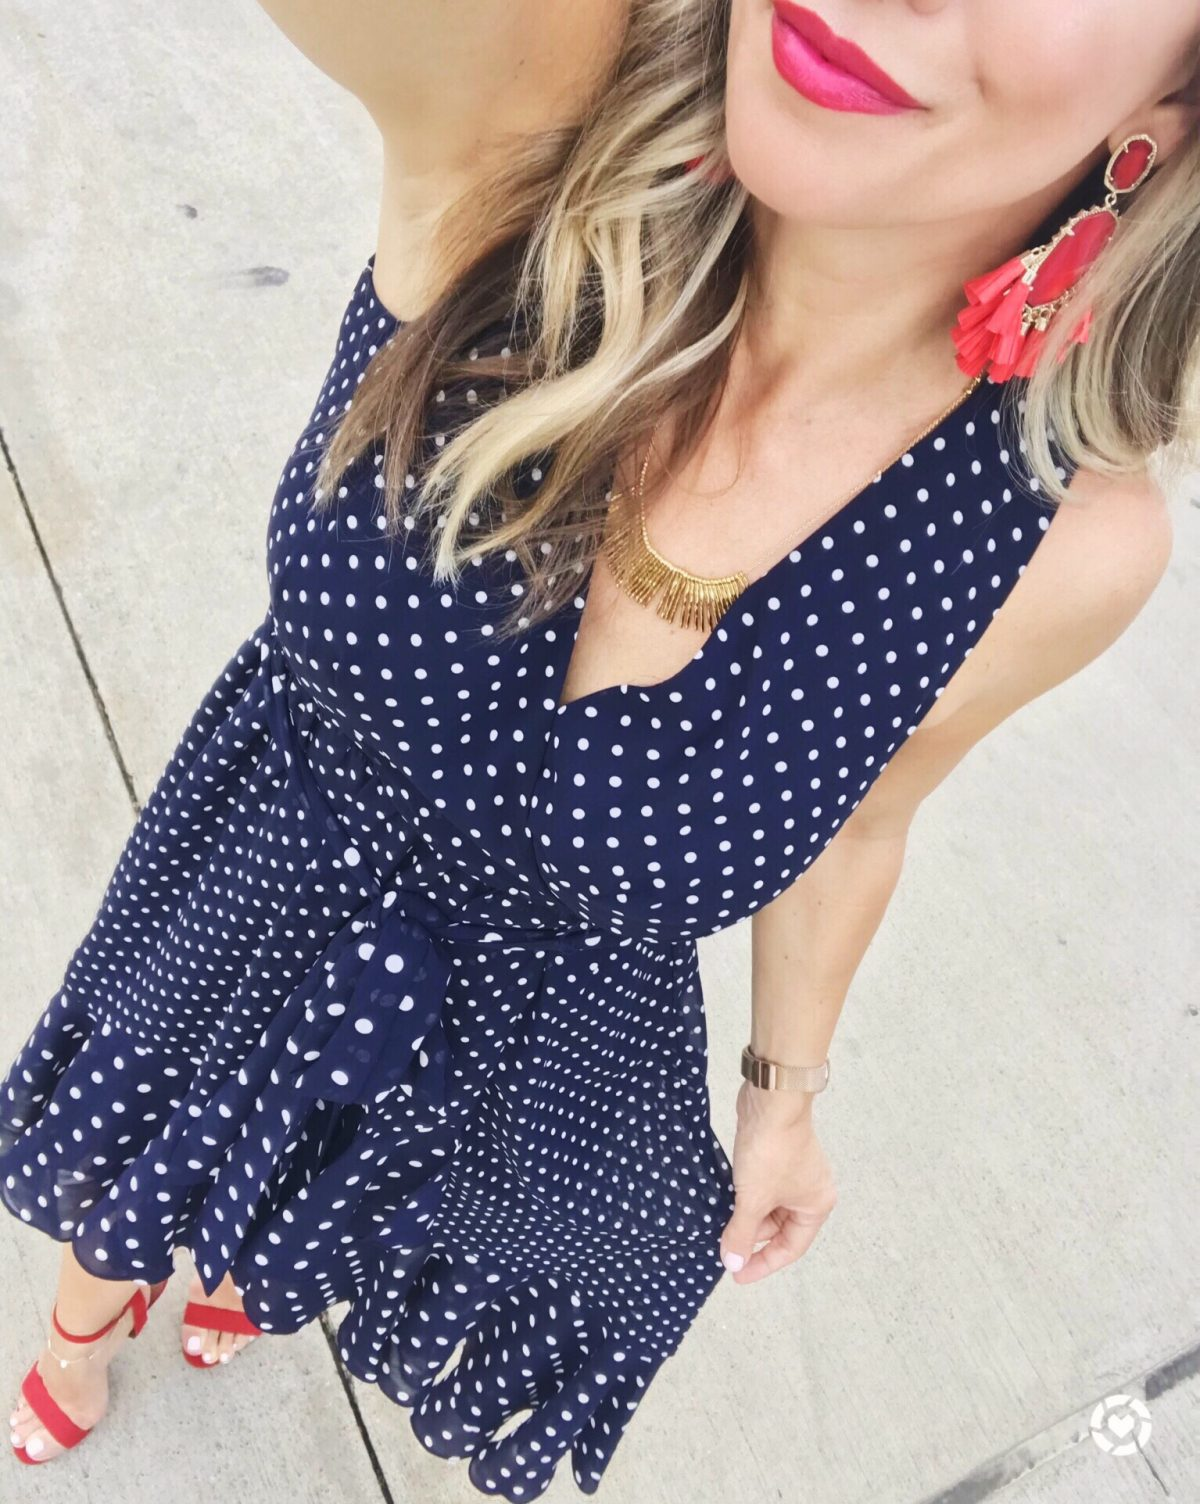 Spring and Summer outfit ideas - navy polka dot dress with red accessories